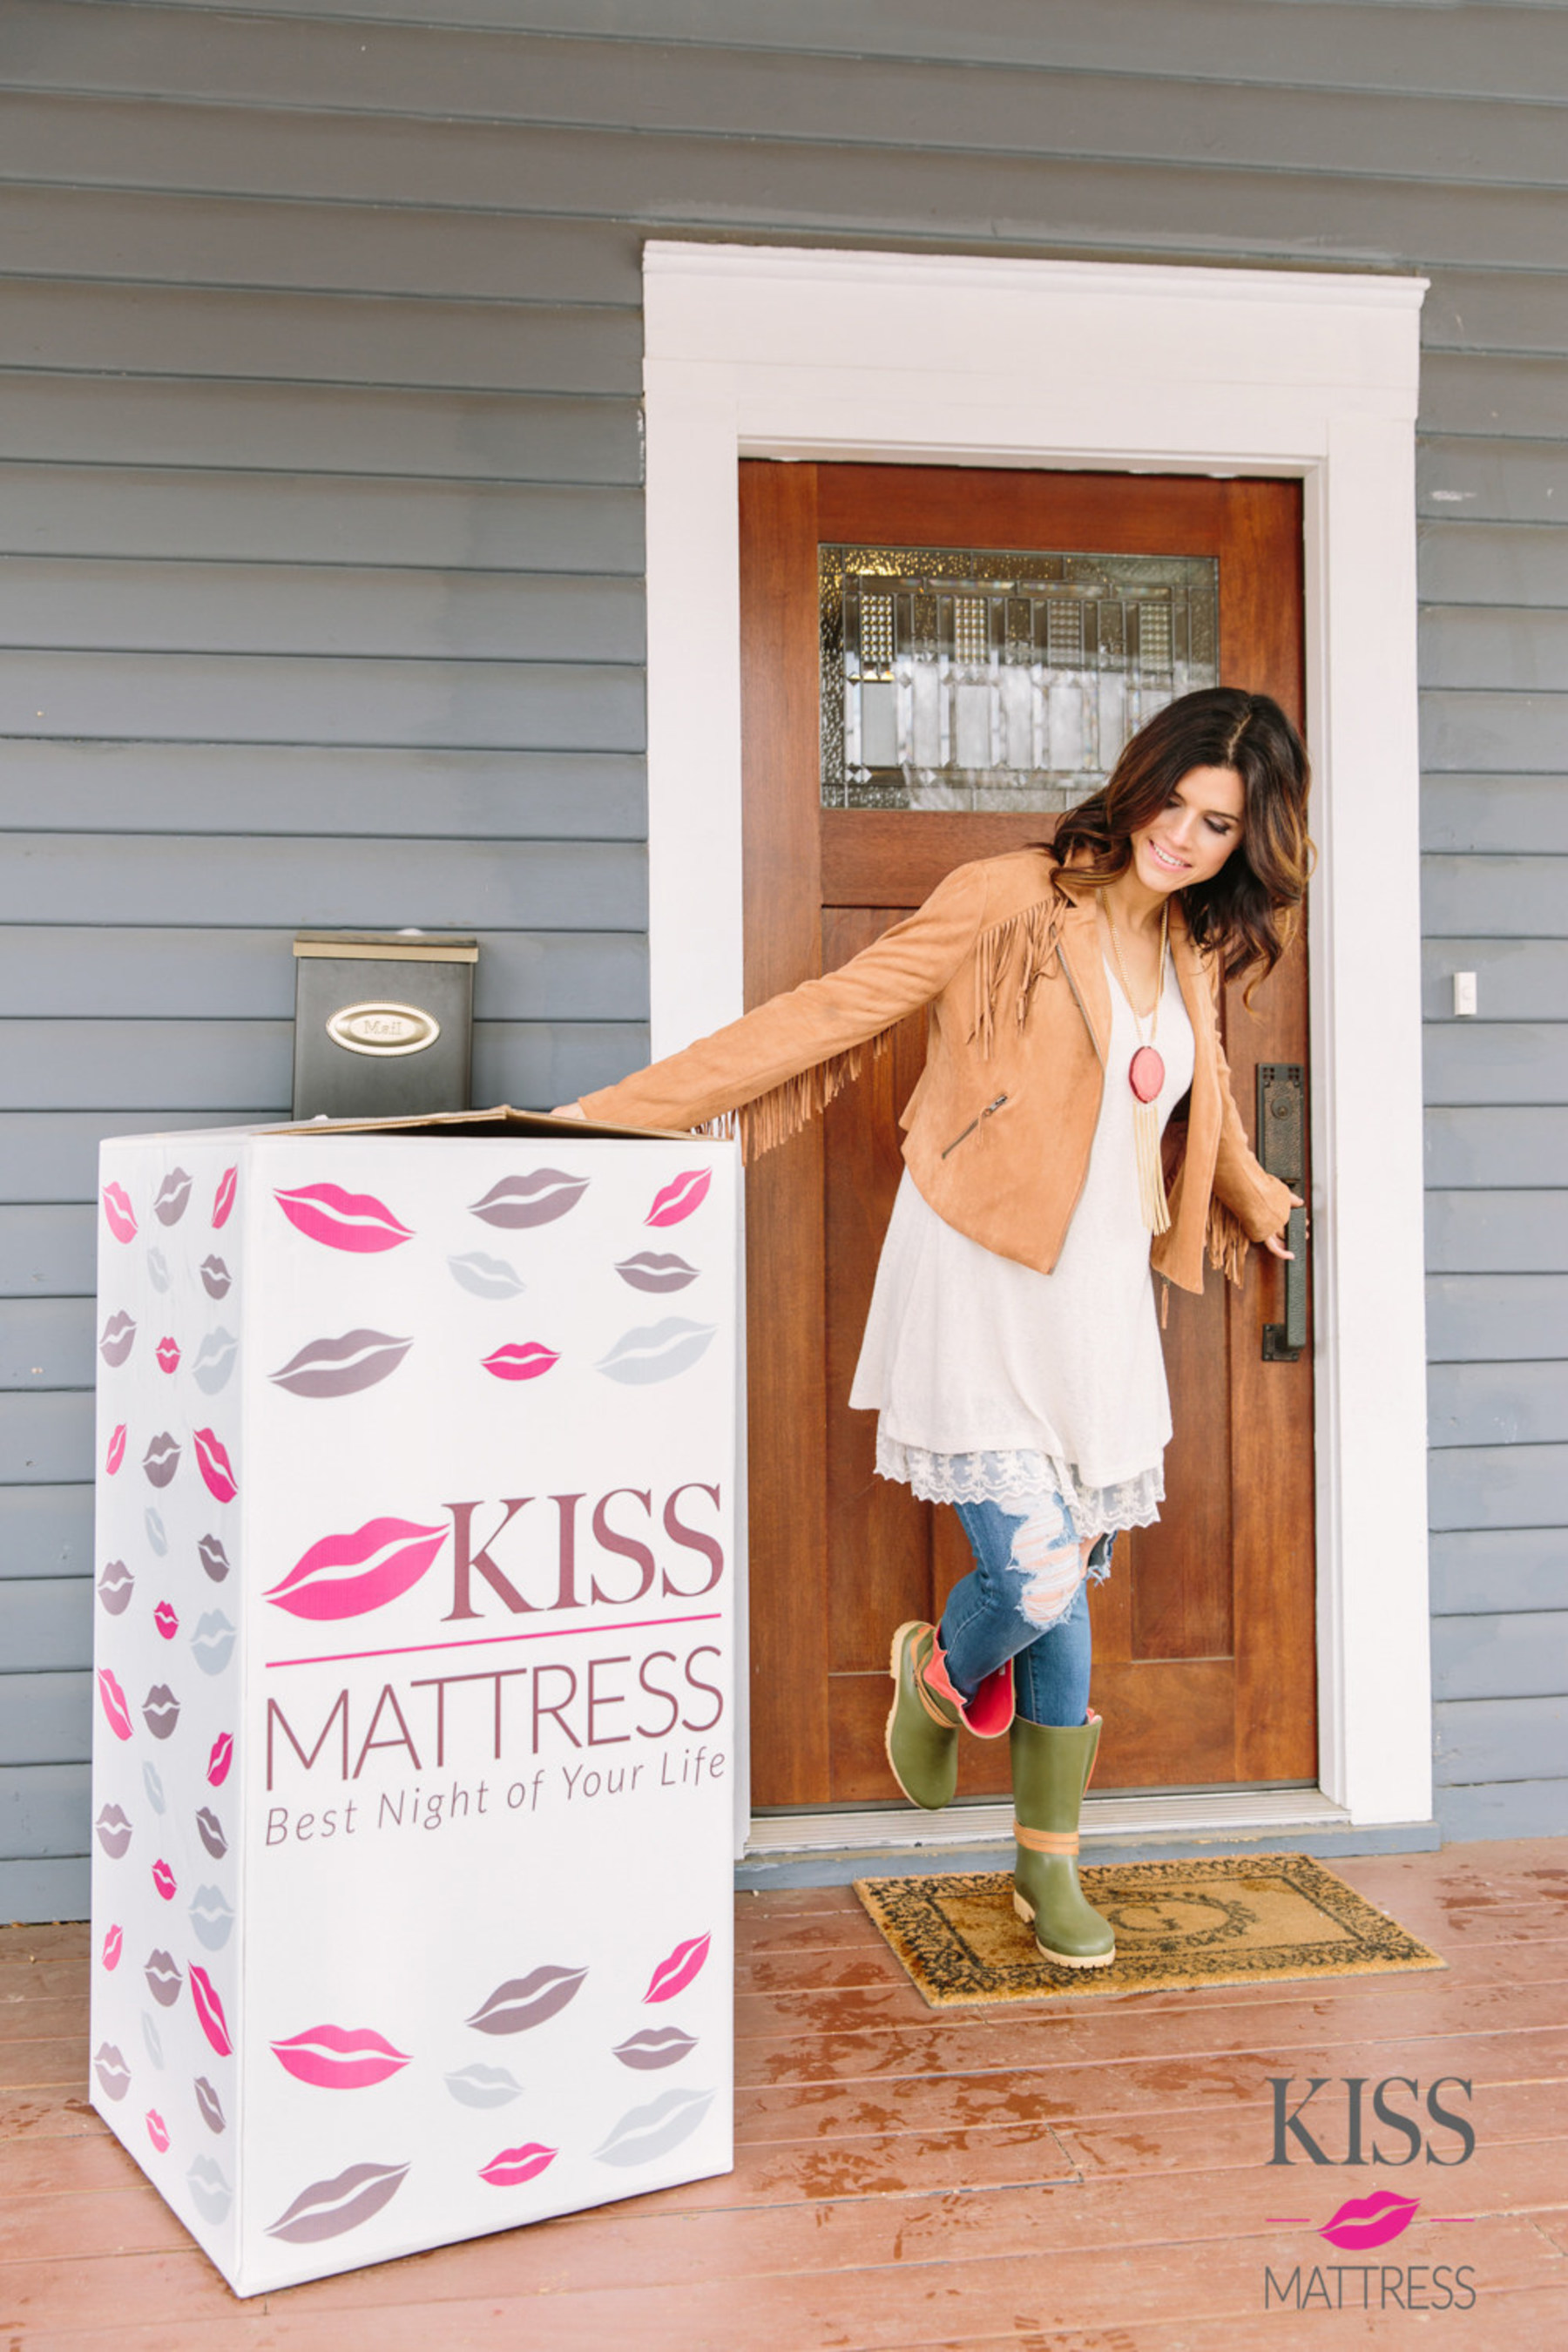 Kiss Mattress is delivered to your door in a box the size of a bar stool.